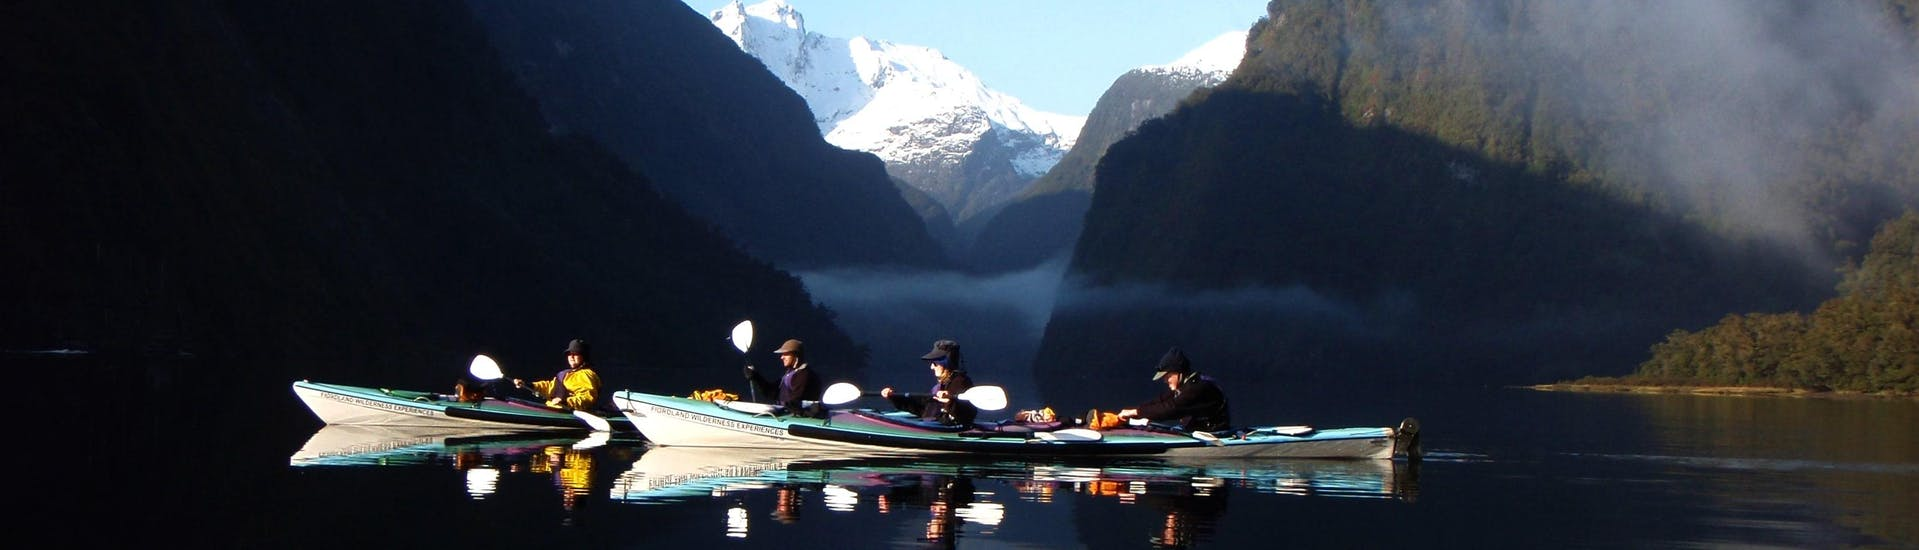 Kayakers are enjoying a peaceful moment during Kayak Tour in Doubtful Sound Fjord organized by Go Orange